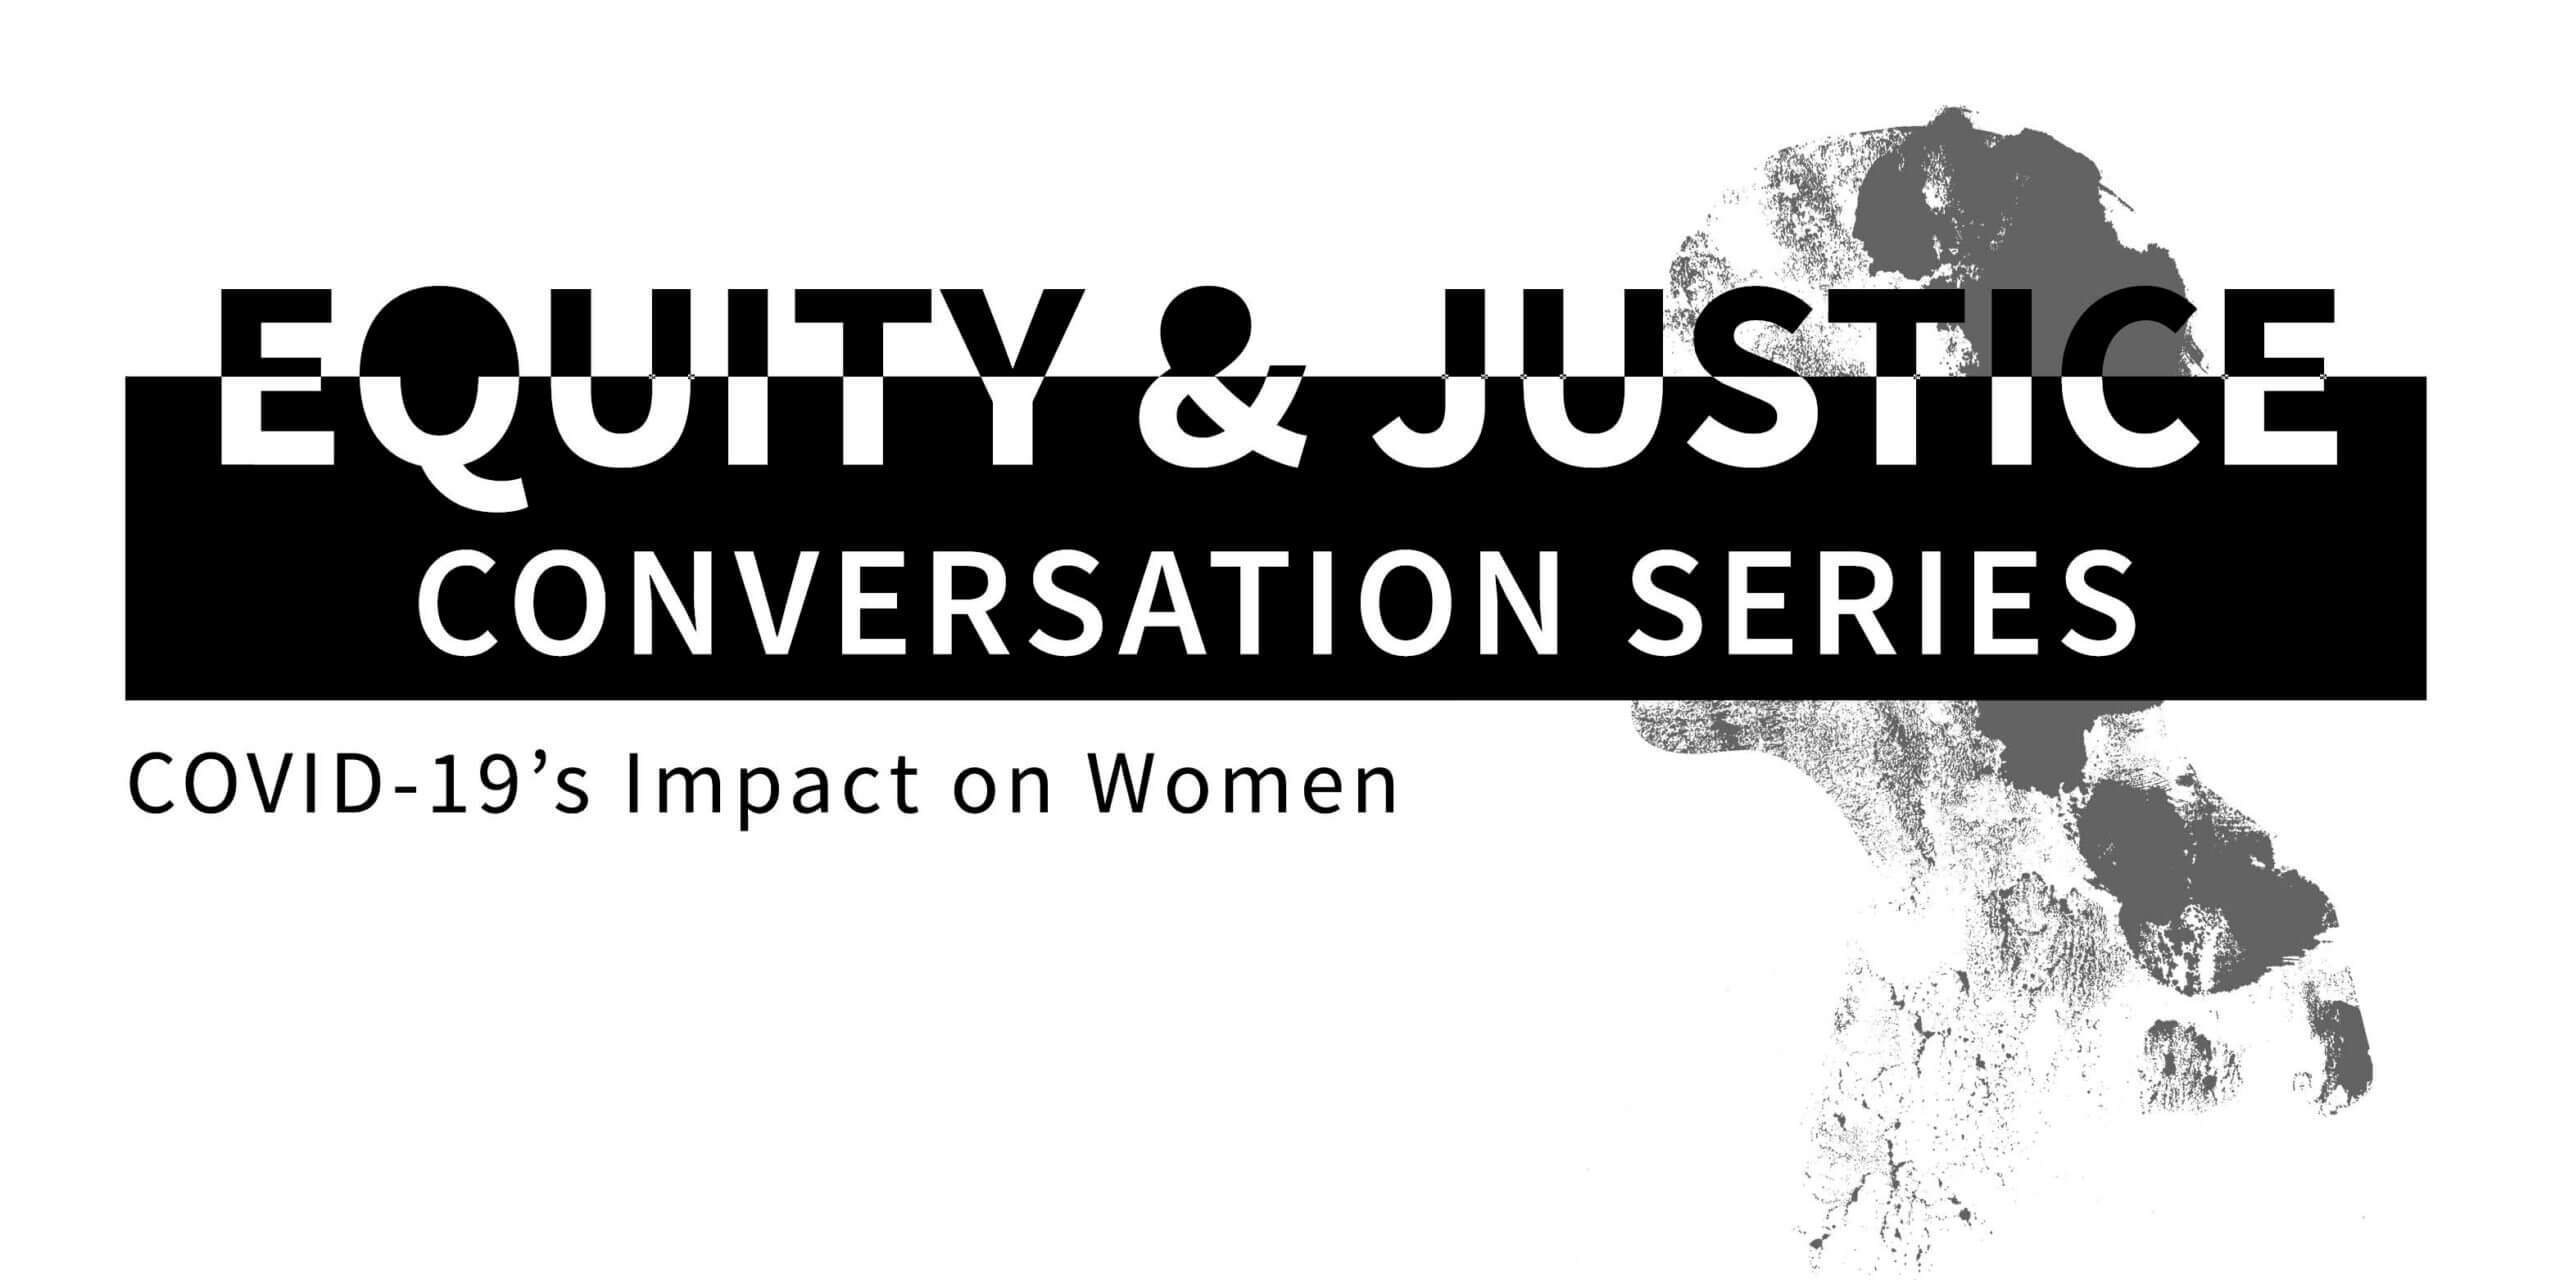 Equity & Justice Conversation Series: Covid-19's Impact on Women